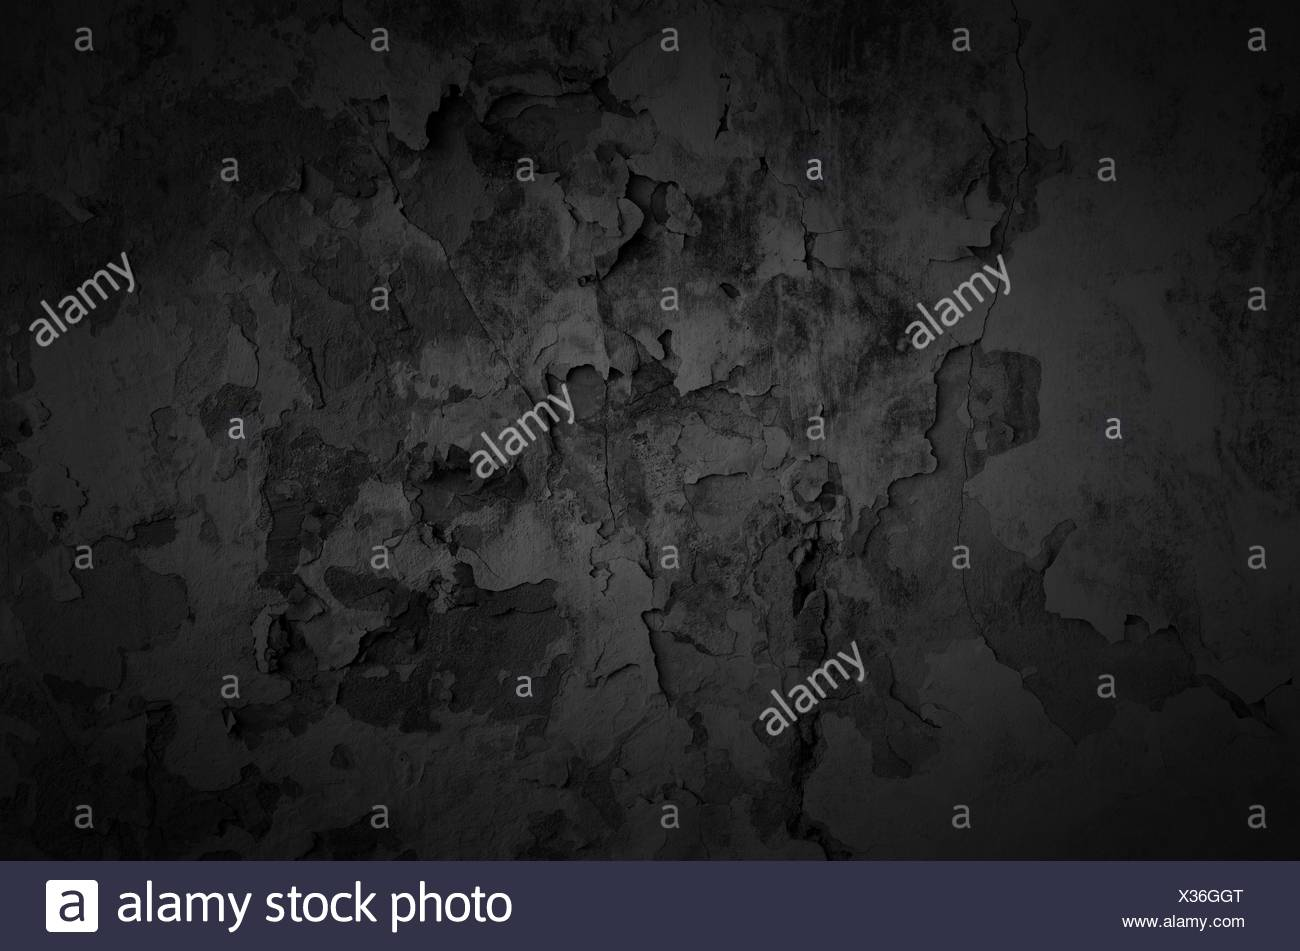 Shabby wall texture background - Stock Image